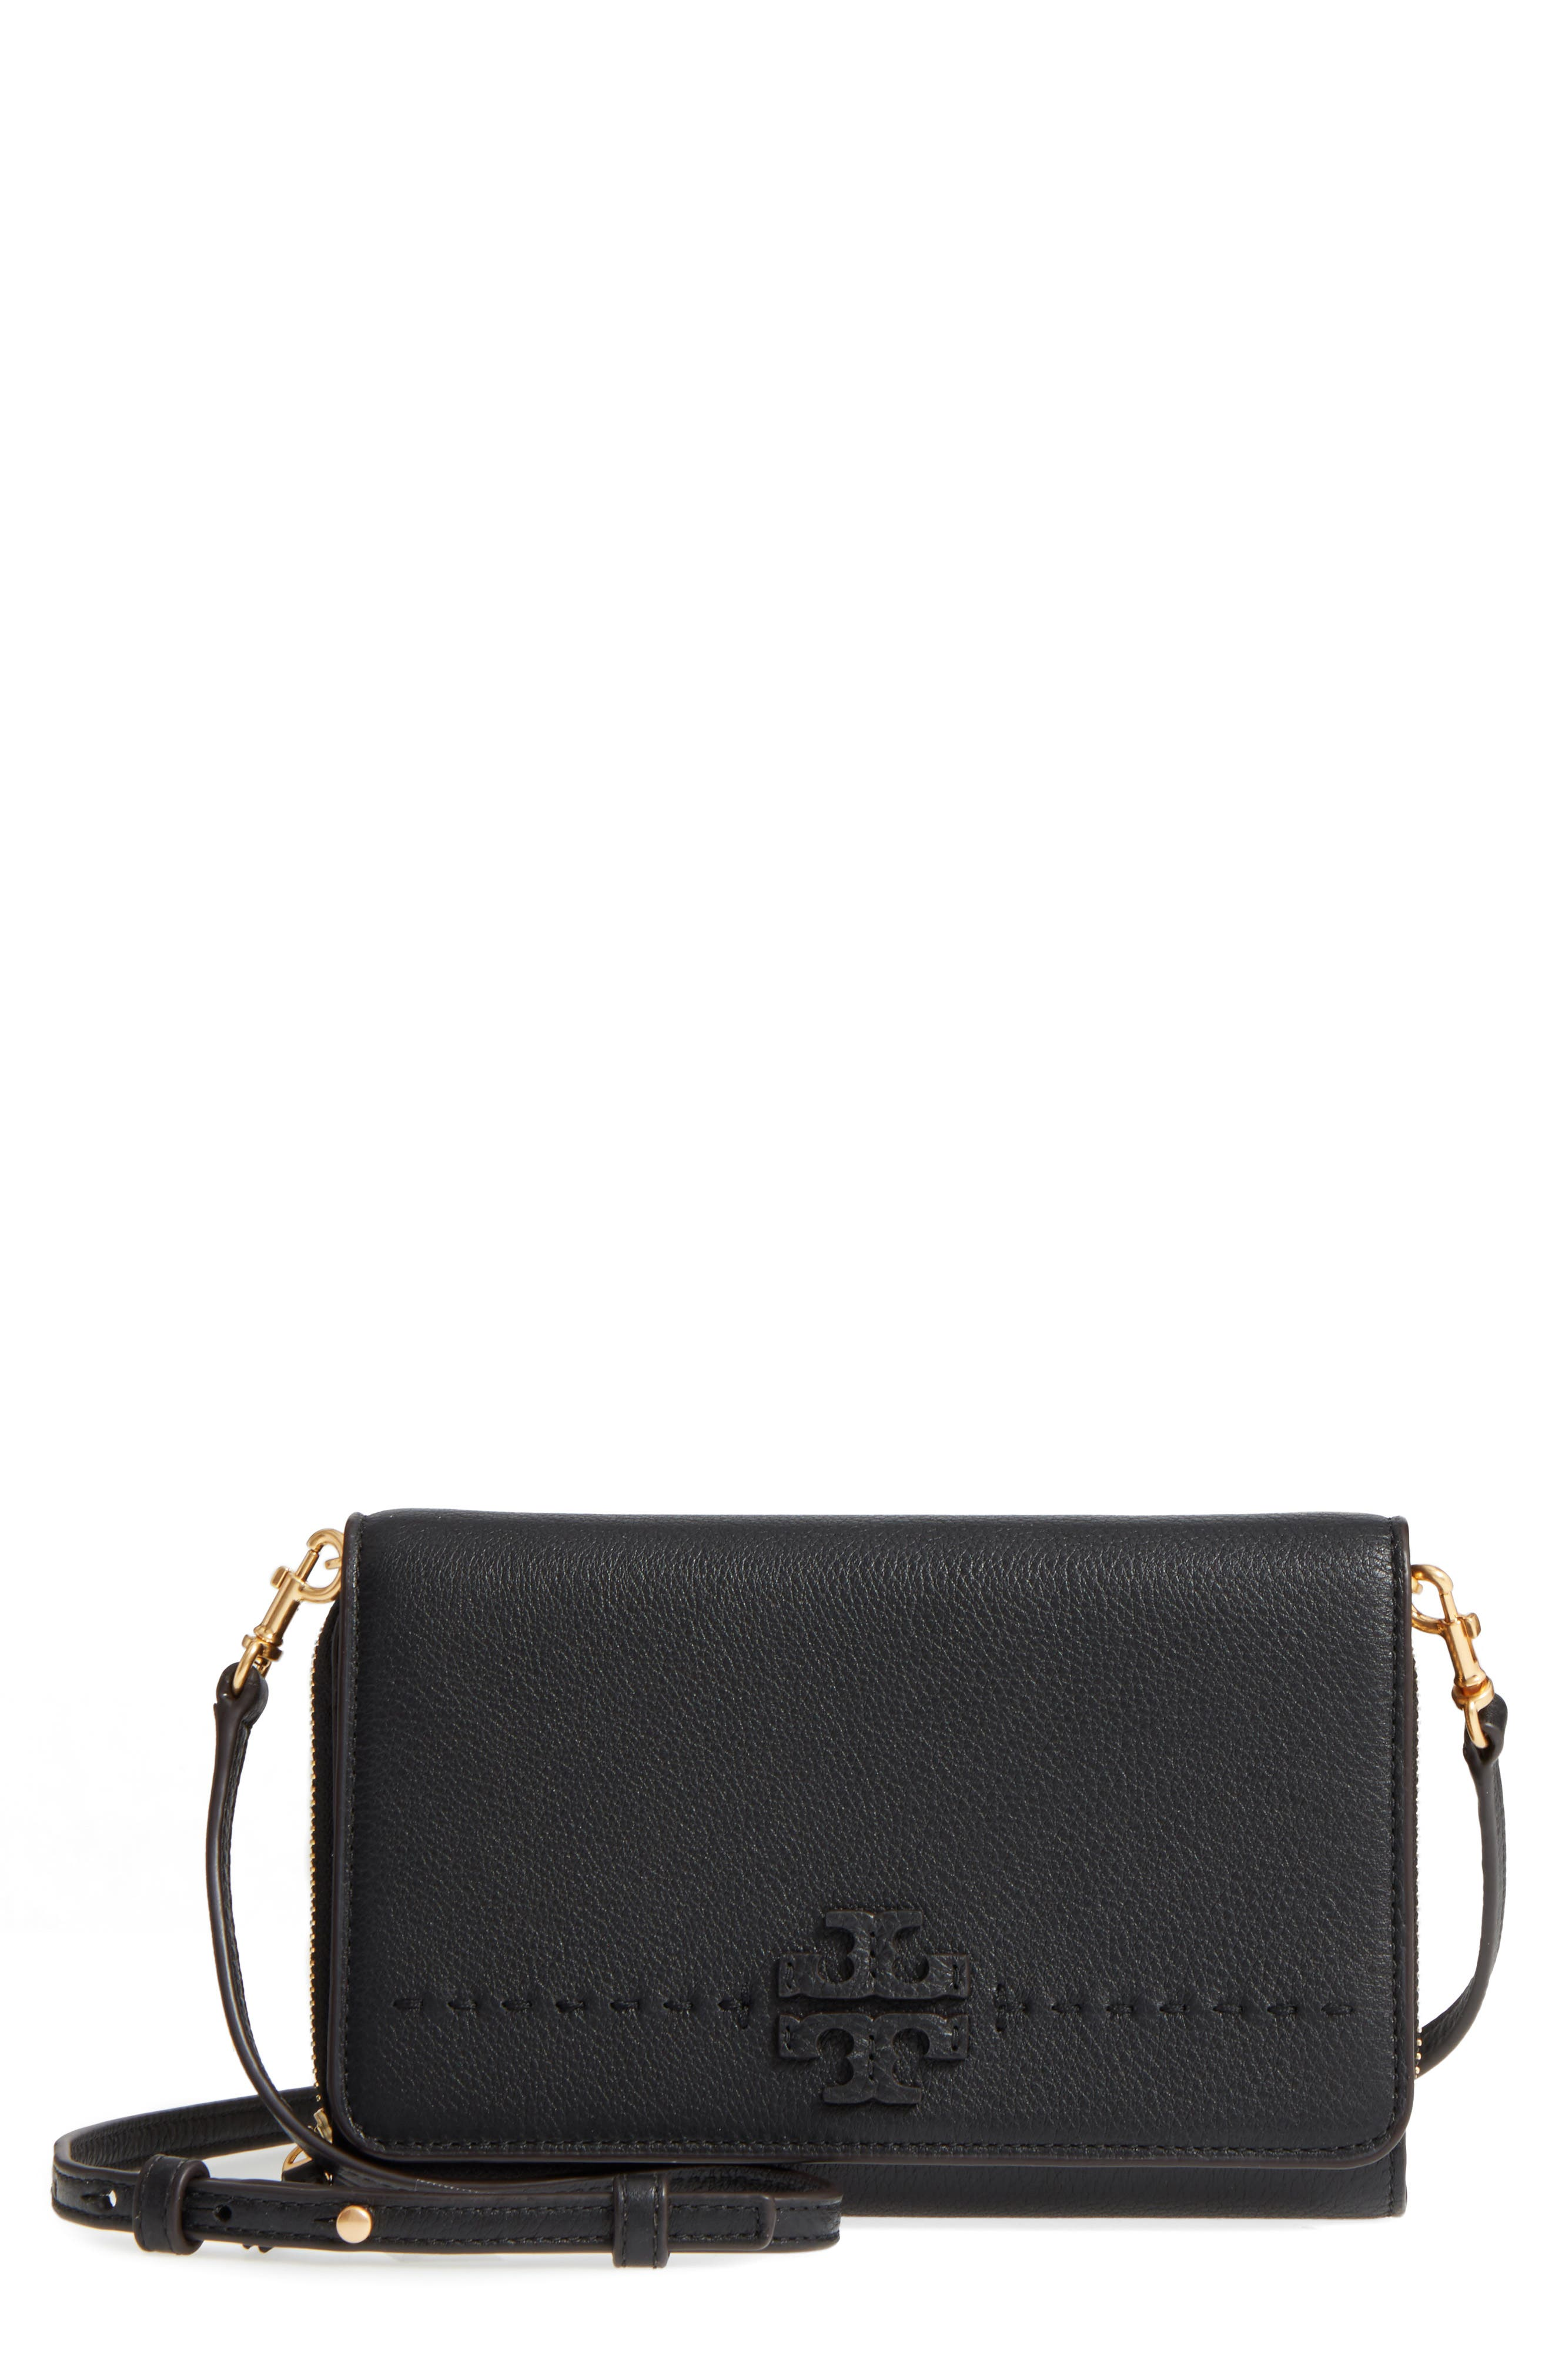 TORY BURCH, McGraw Leather Crossbody Wallet, Main thumbnail 1, color, BLACK